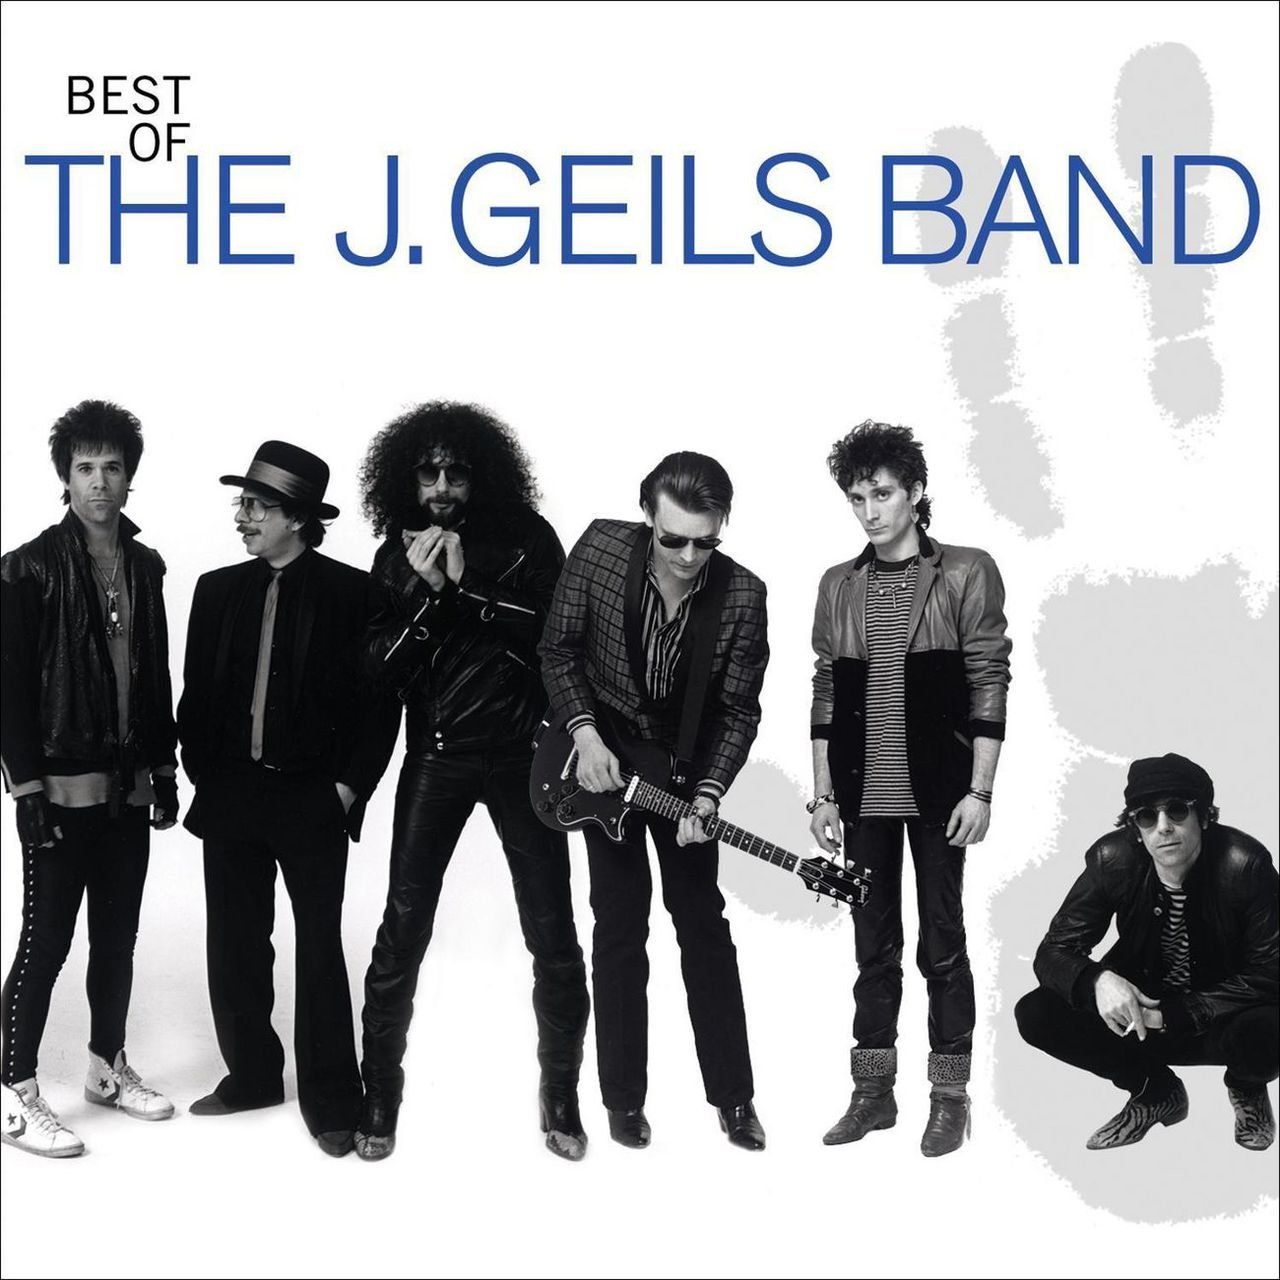 Best Of The J. Geils Band / The J. Geils Band TIDAL